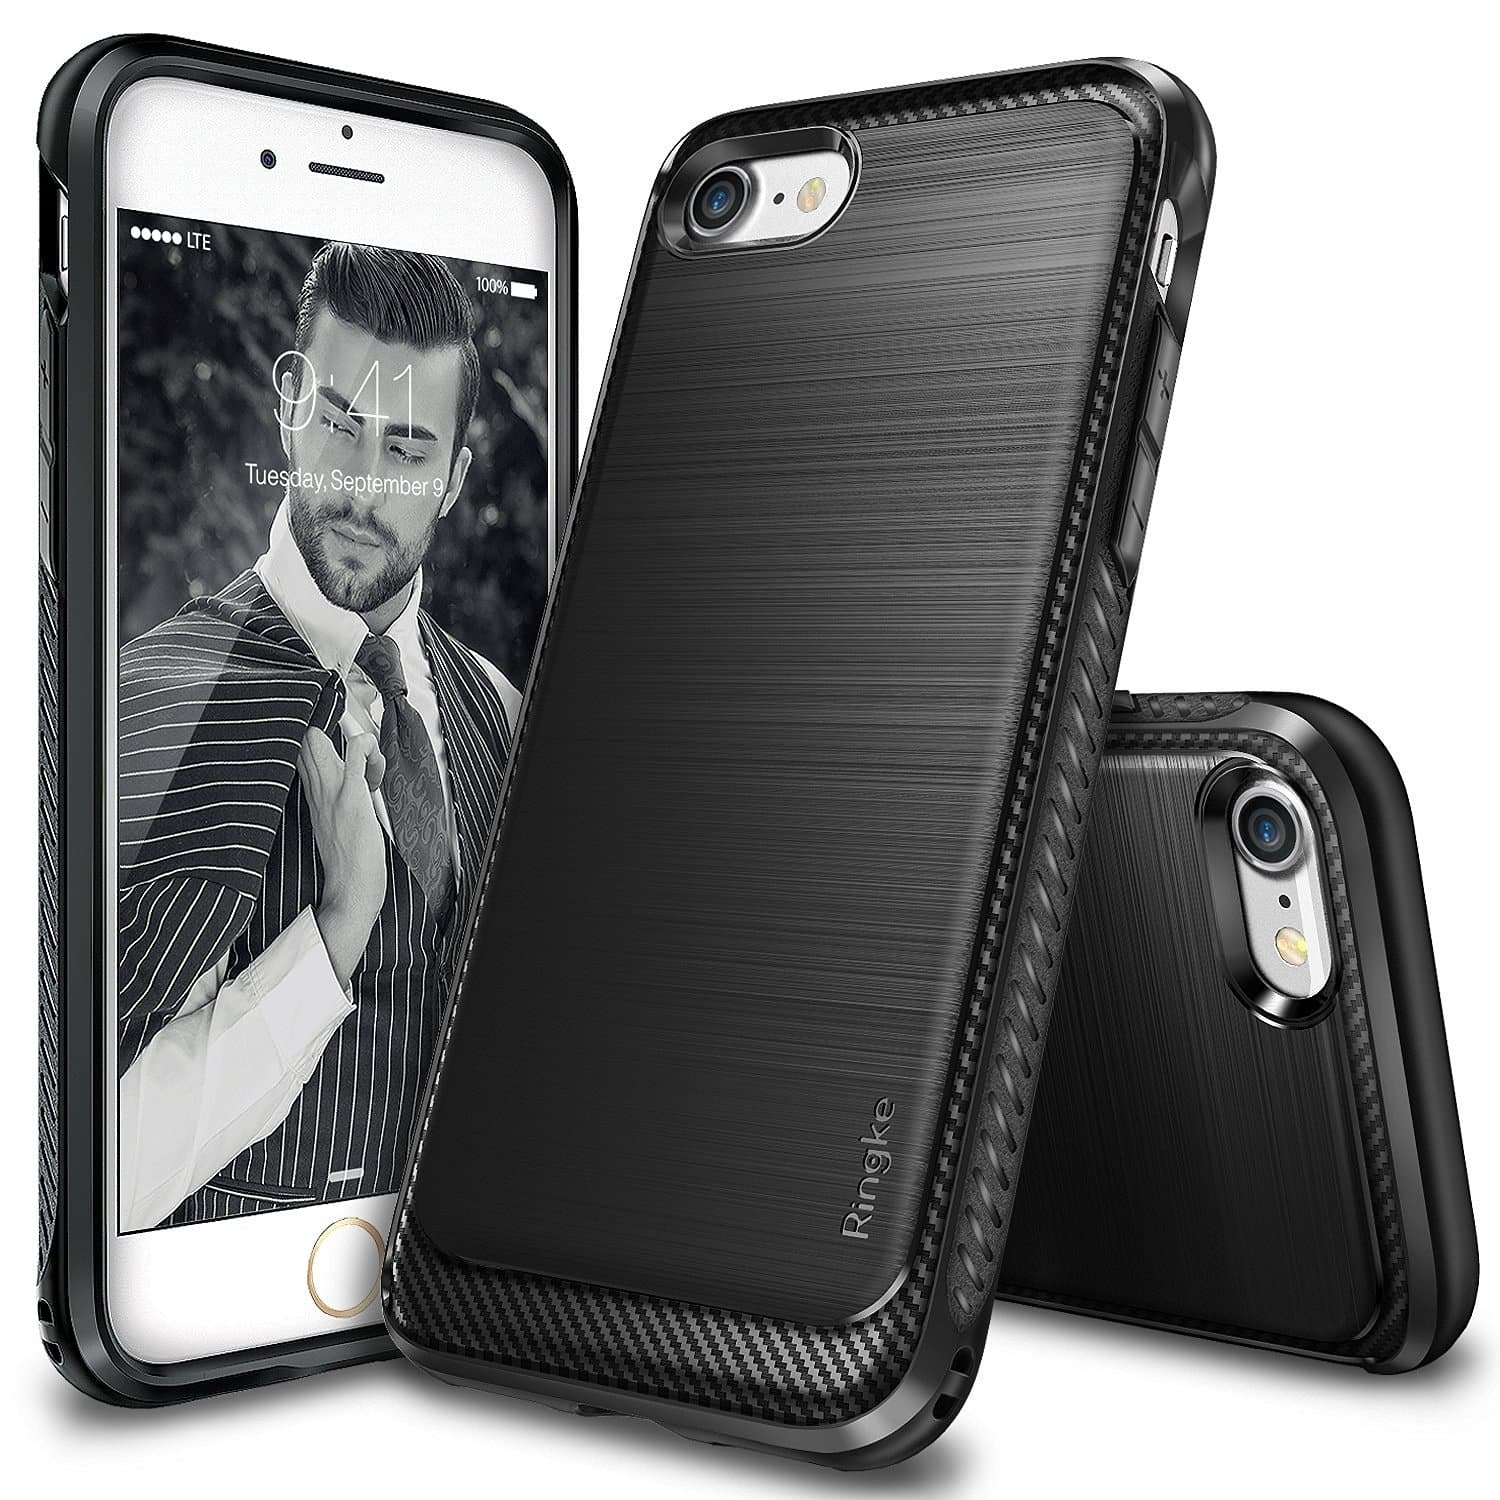 Ringke Case for iPhone 7 and iPhone 7 Plus  $4